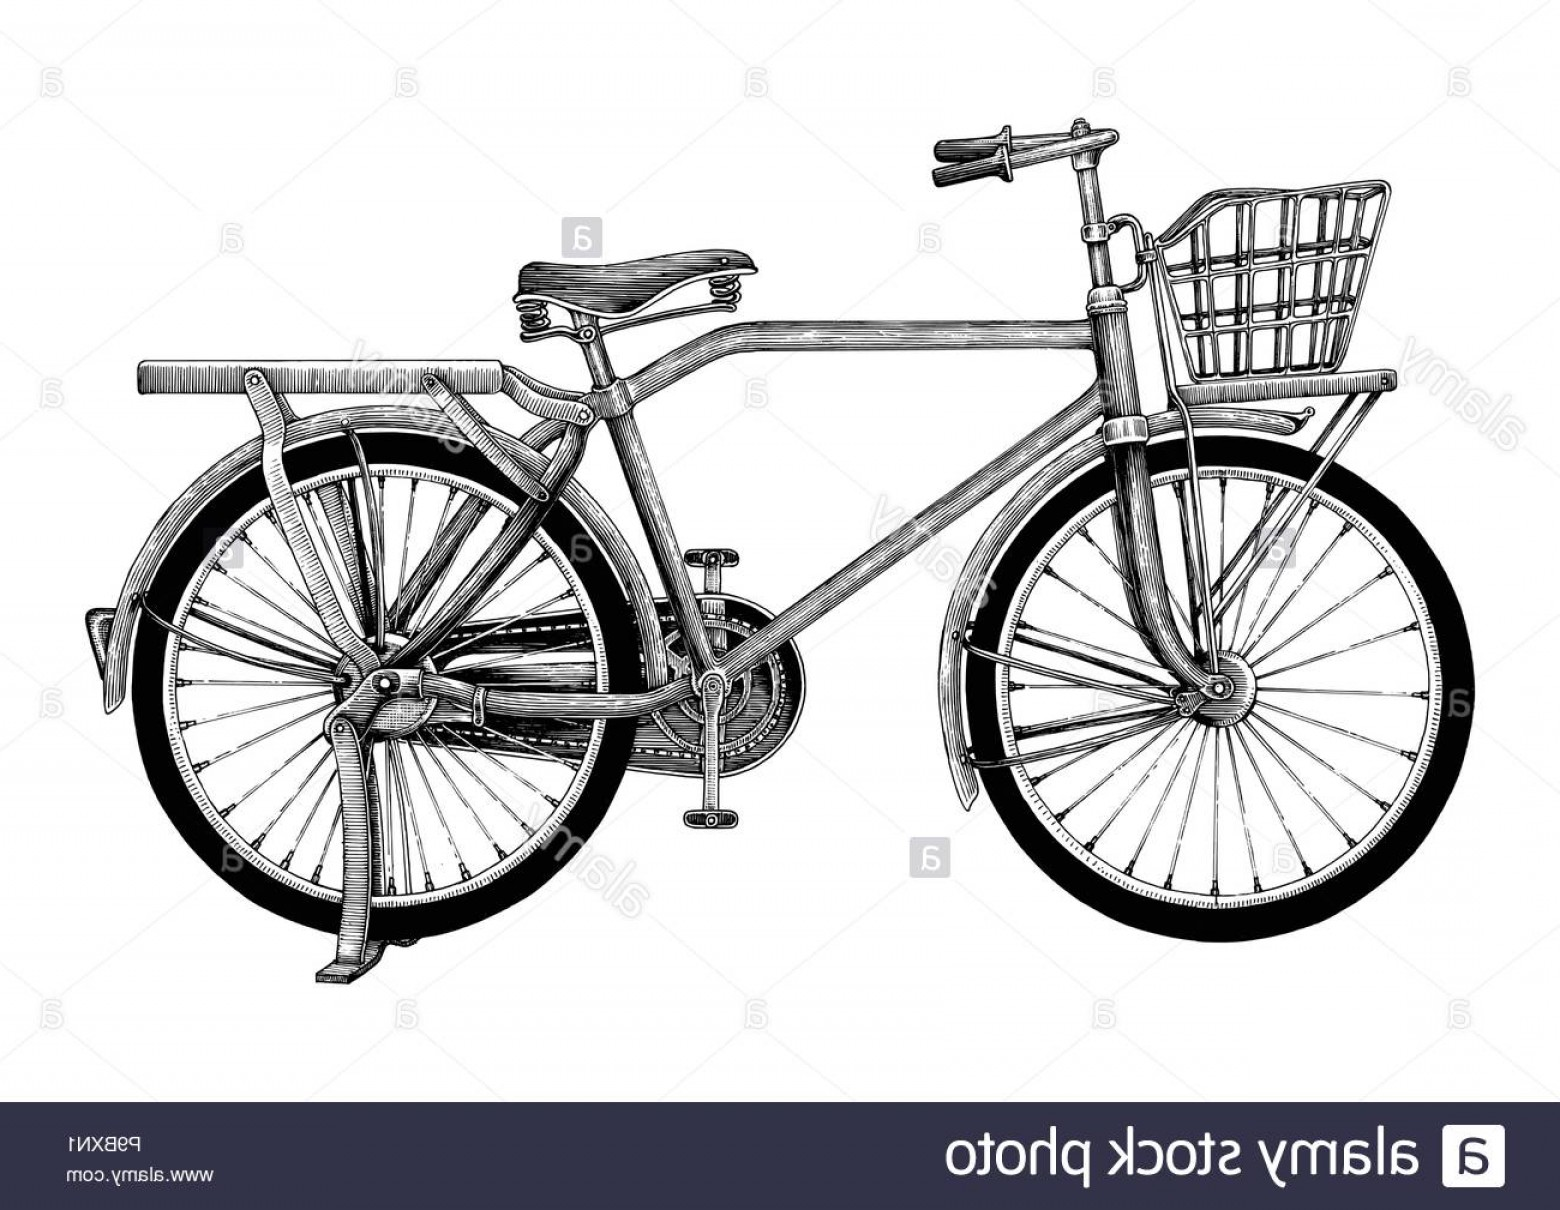 Bicycle Crank Vector Of Artwork: Vintage Bicycle Hand Drawing Clip Art Isolated On White Background Image